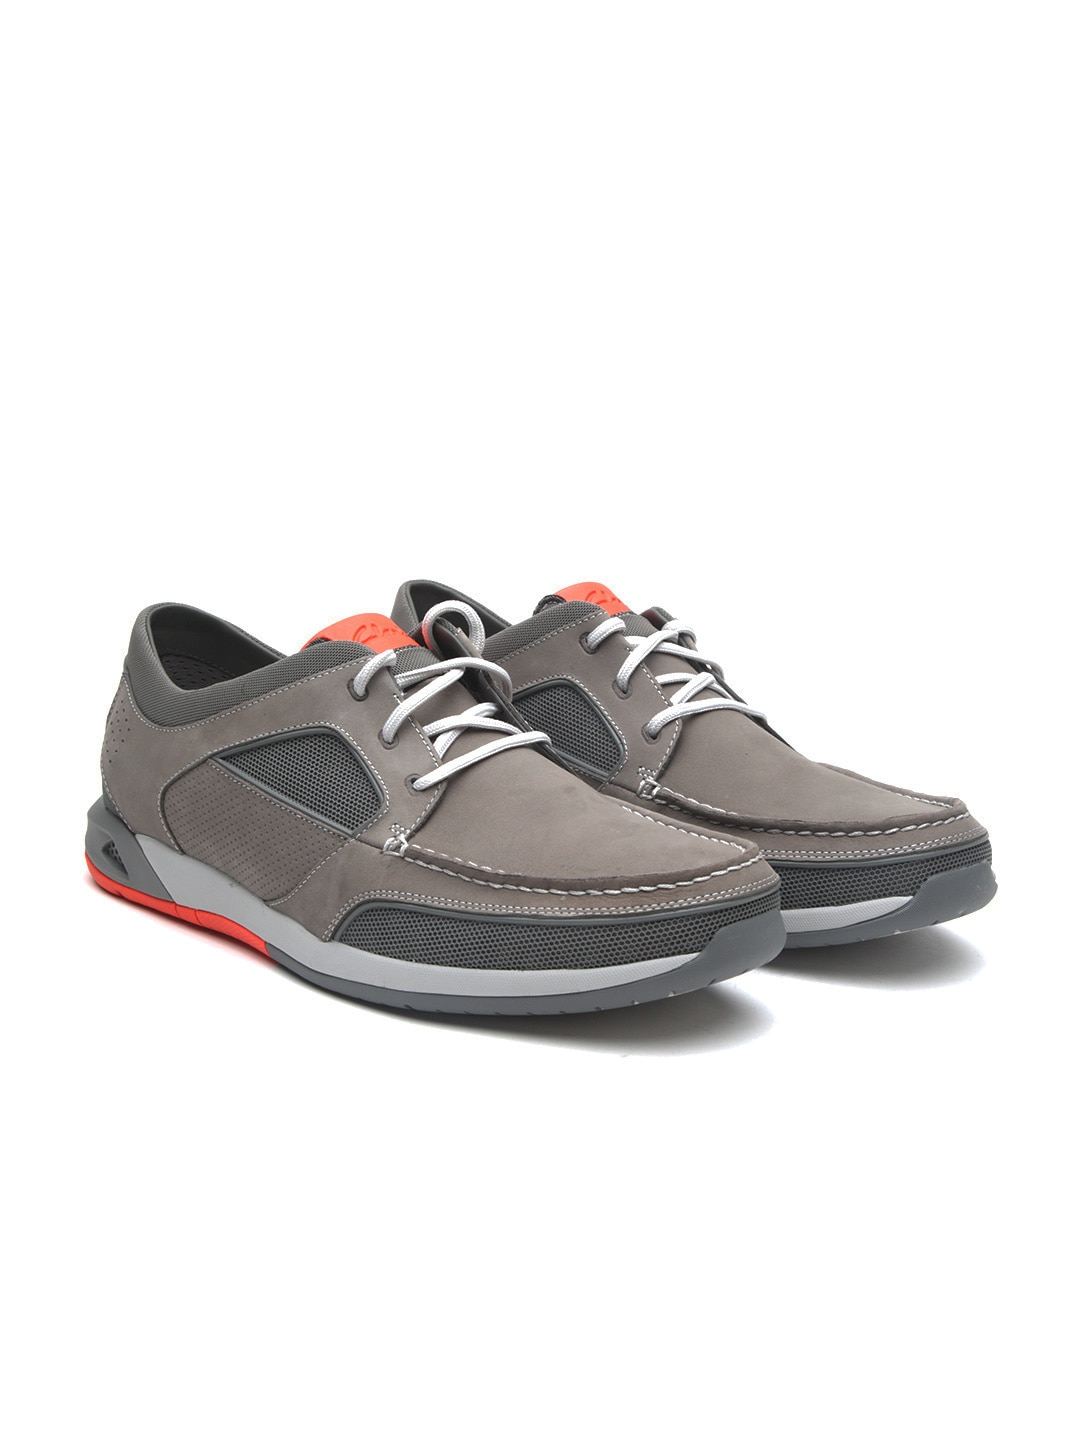 d18cdaa274 CLARKS - Exclusive Clarks Shoes Online Store in India - Myntra